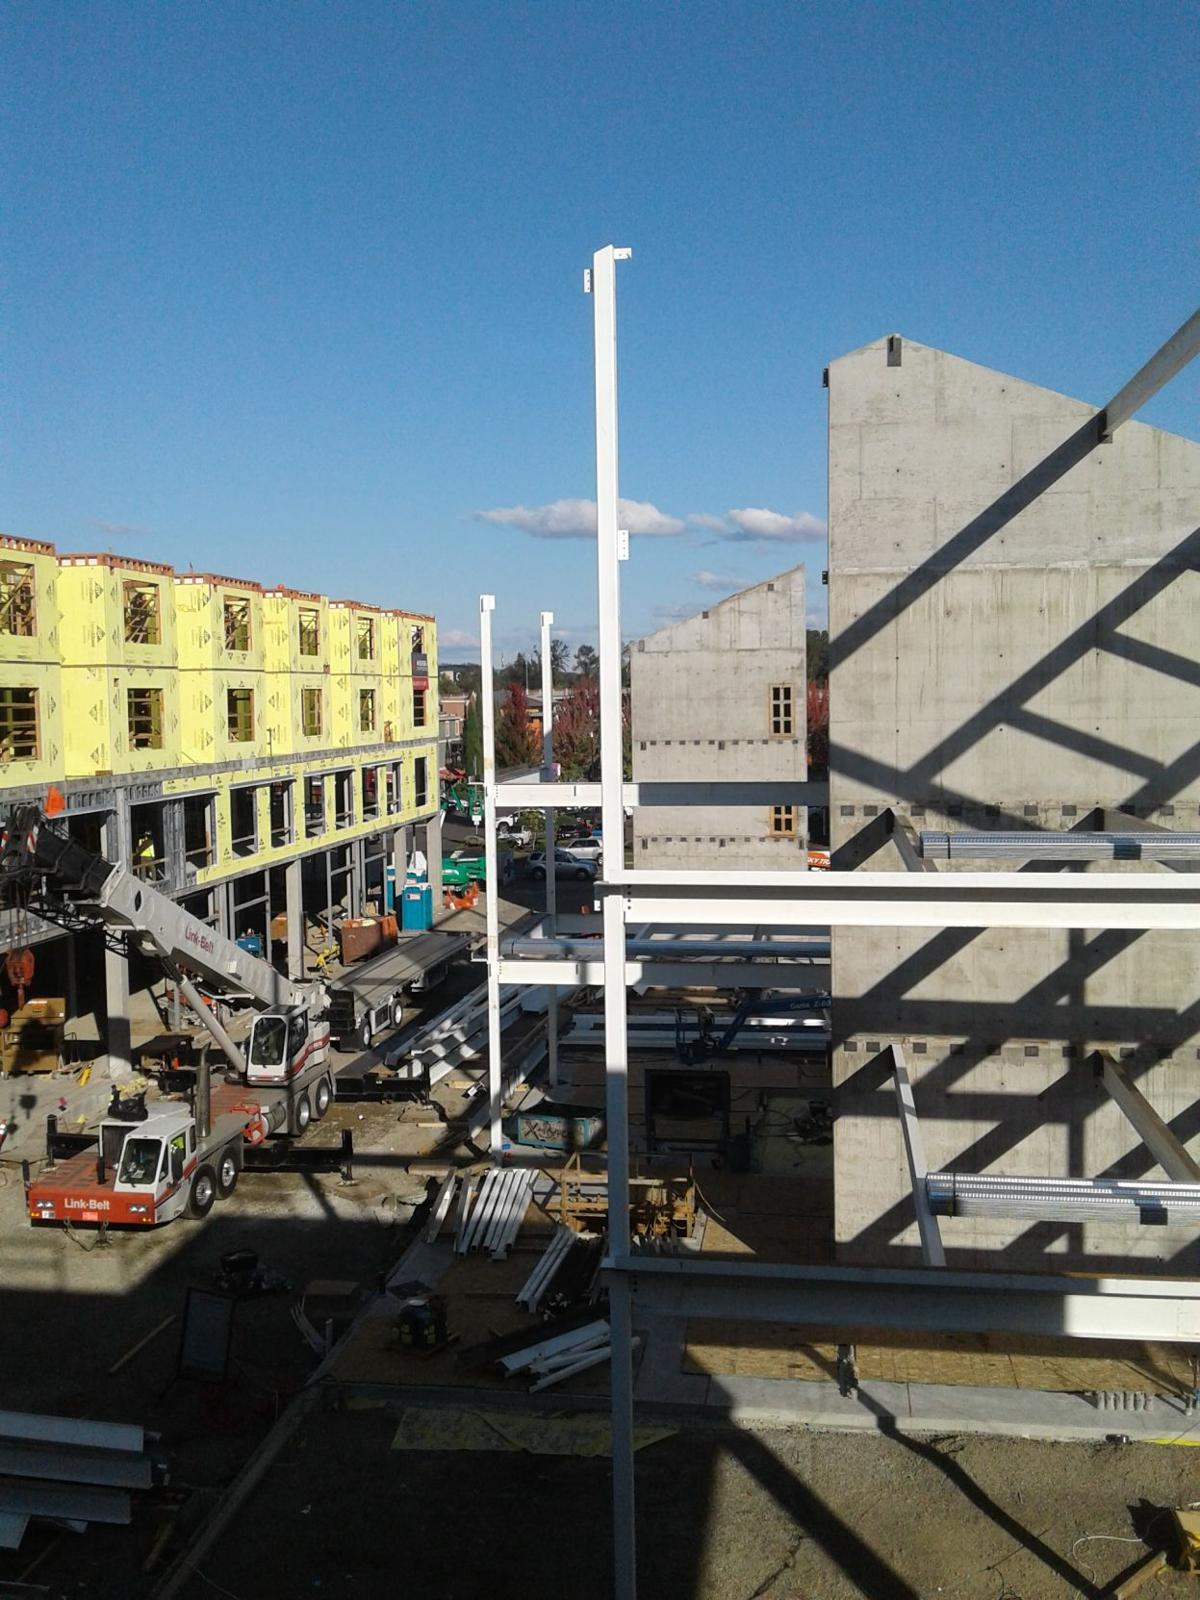 5th Street Market construction